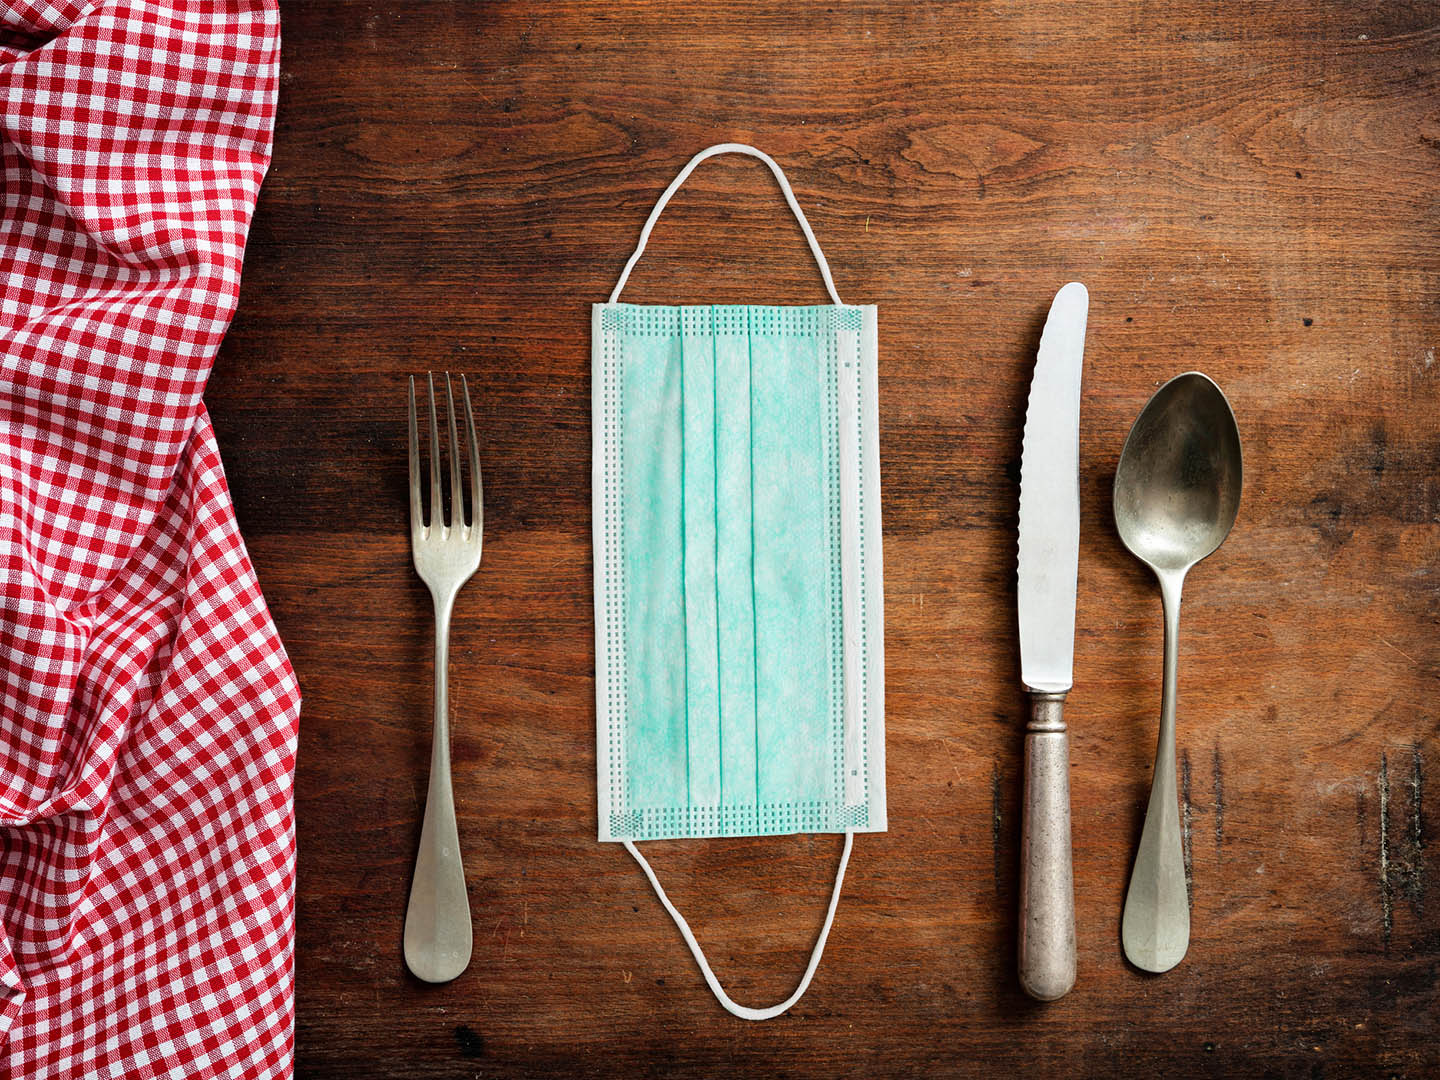 Is Dining Out A COVID-19 Risk? | Disease & Disorders | Andrew Weil, M.D.